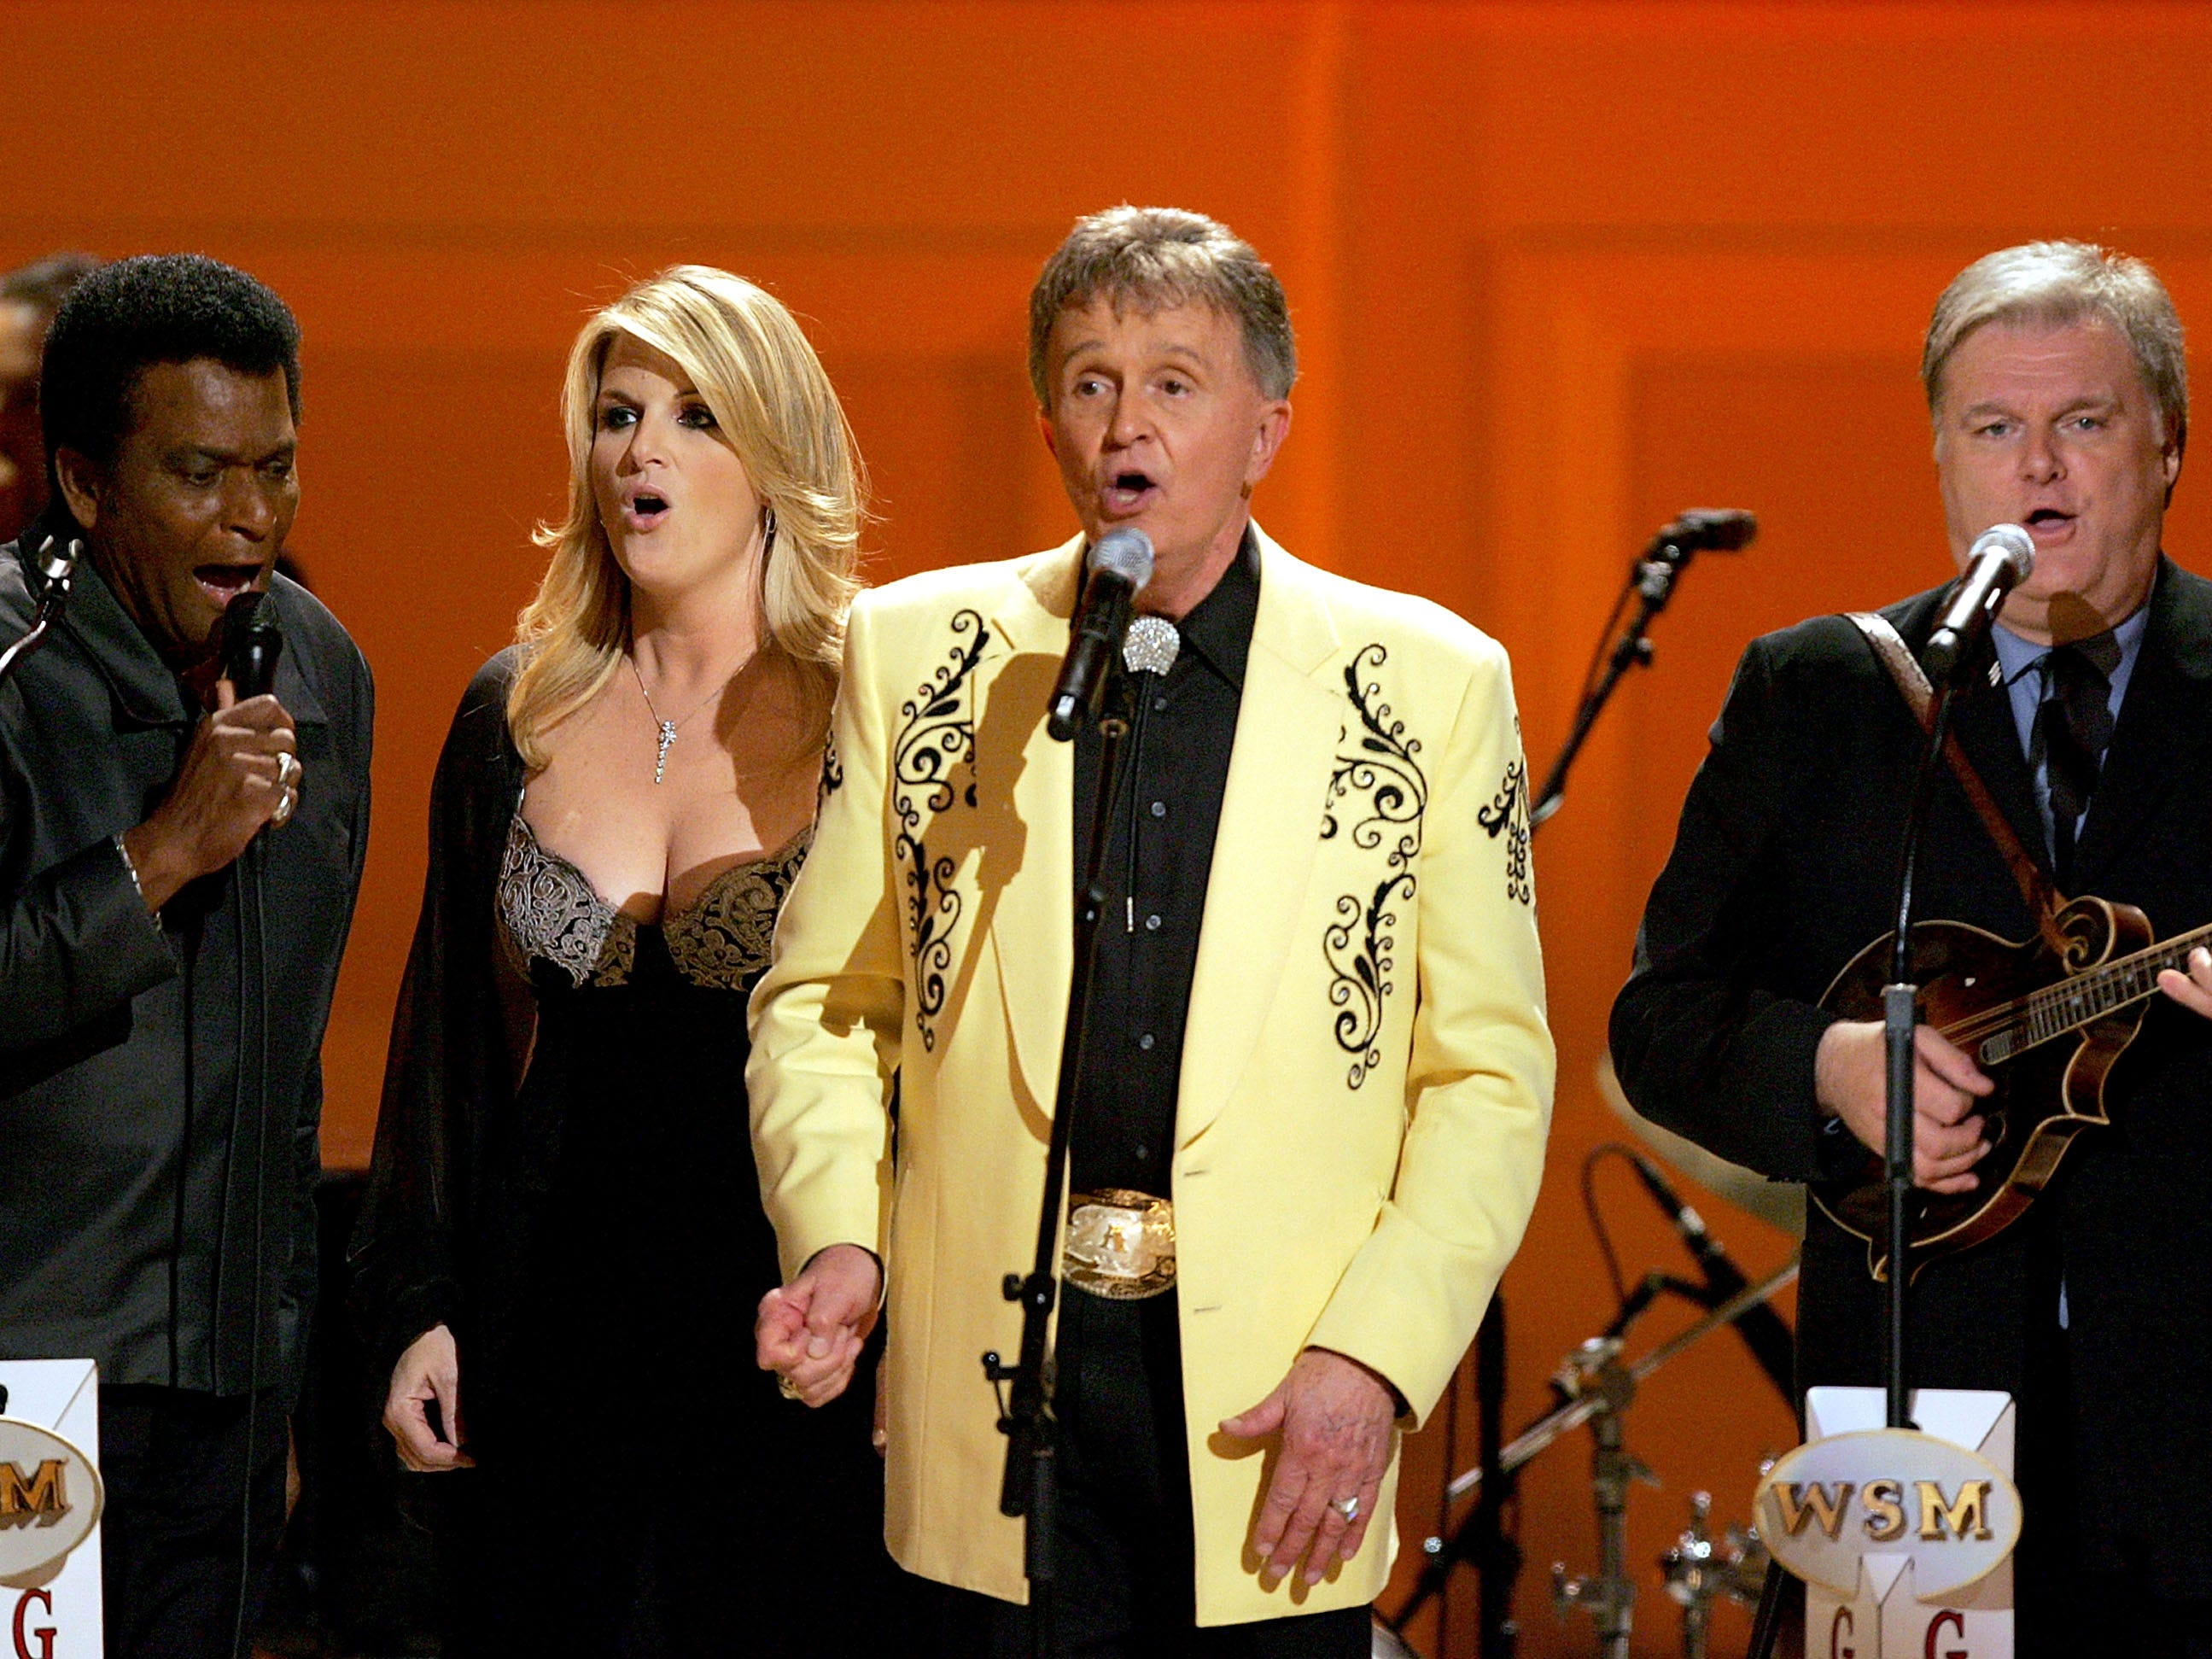 """Charley Pride, Trisha Yearwood, Bill Anderson and Ricky Skaggs perform during a taping of the """"Grand Ole Opry"""" at Carnegie Hall November 14, 2005 in New York City."""